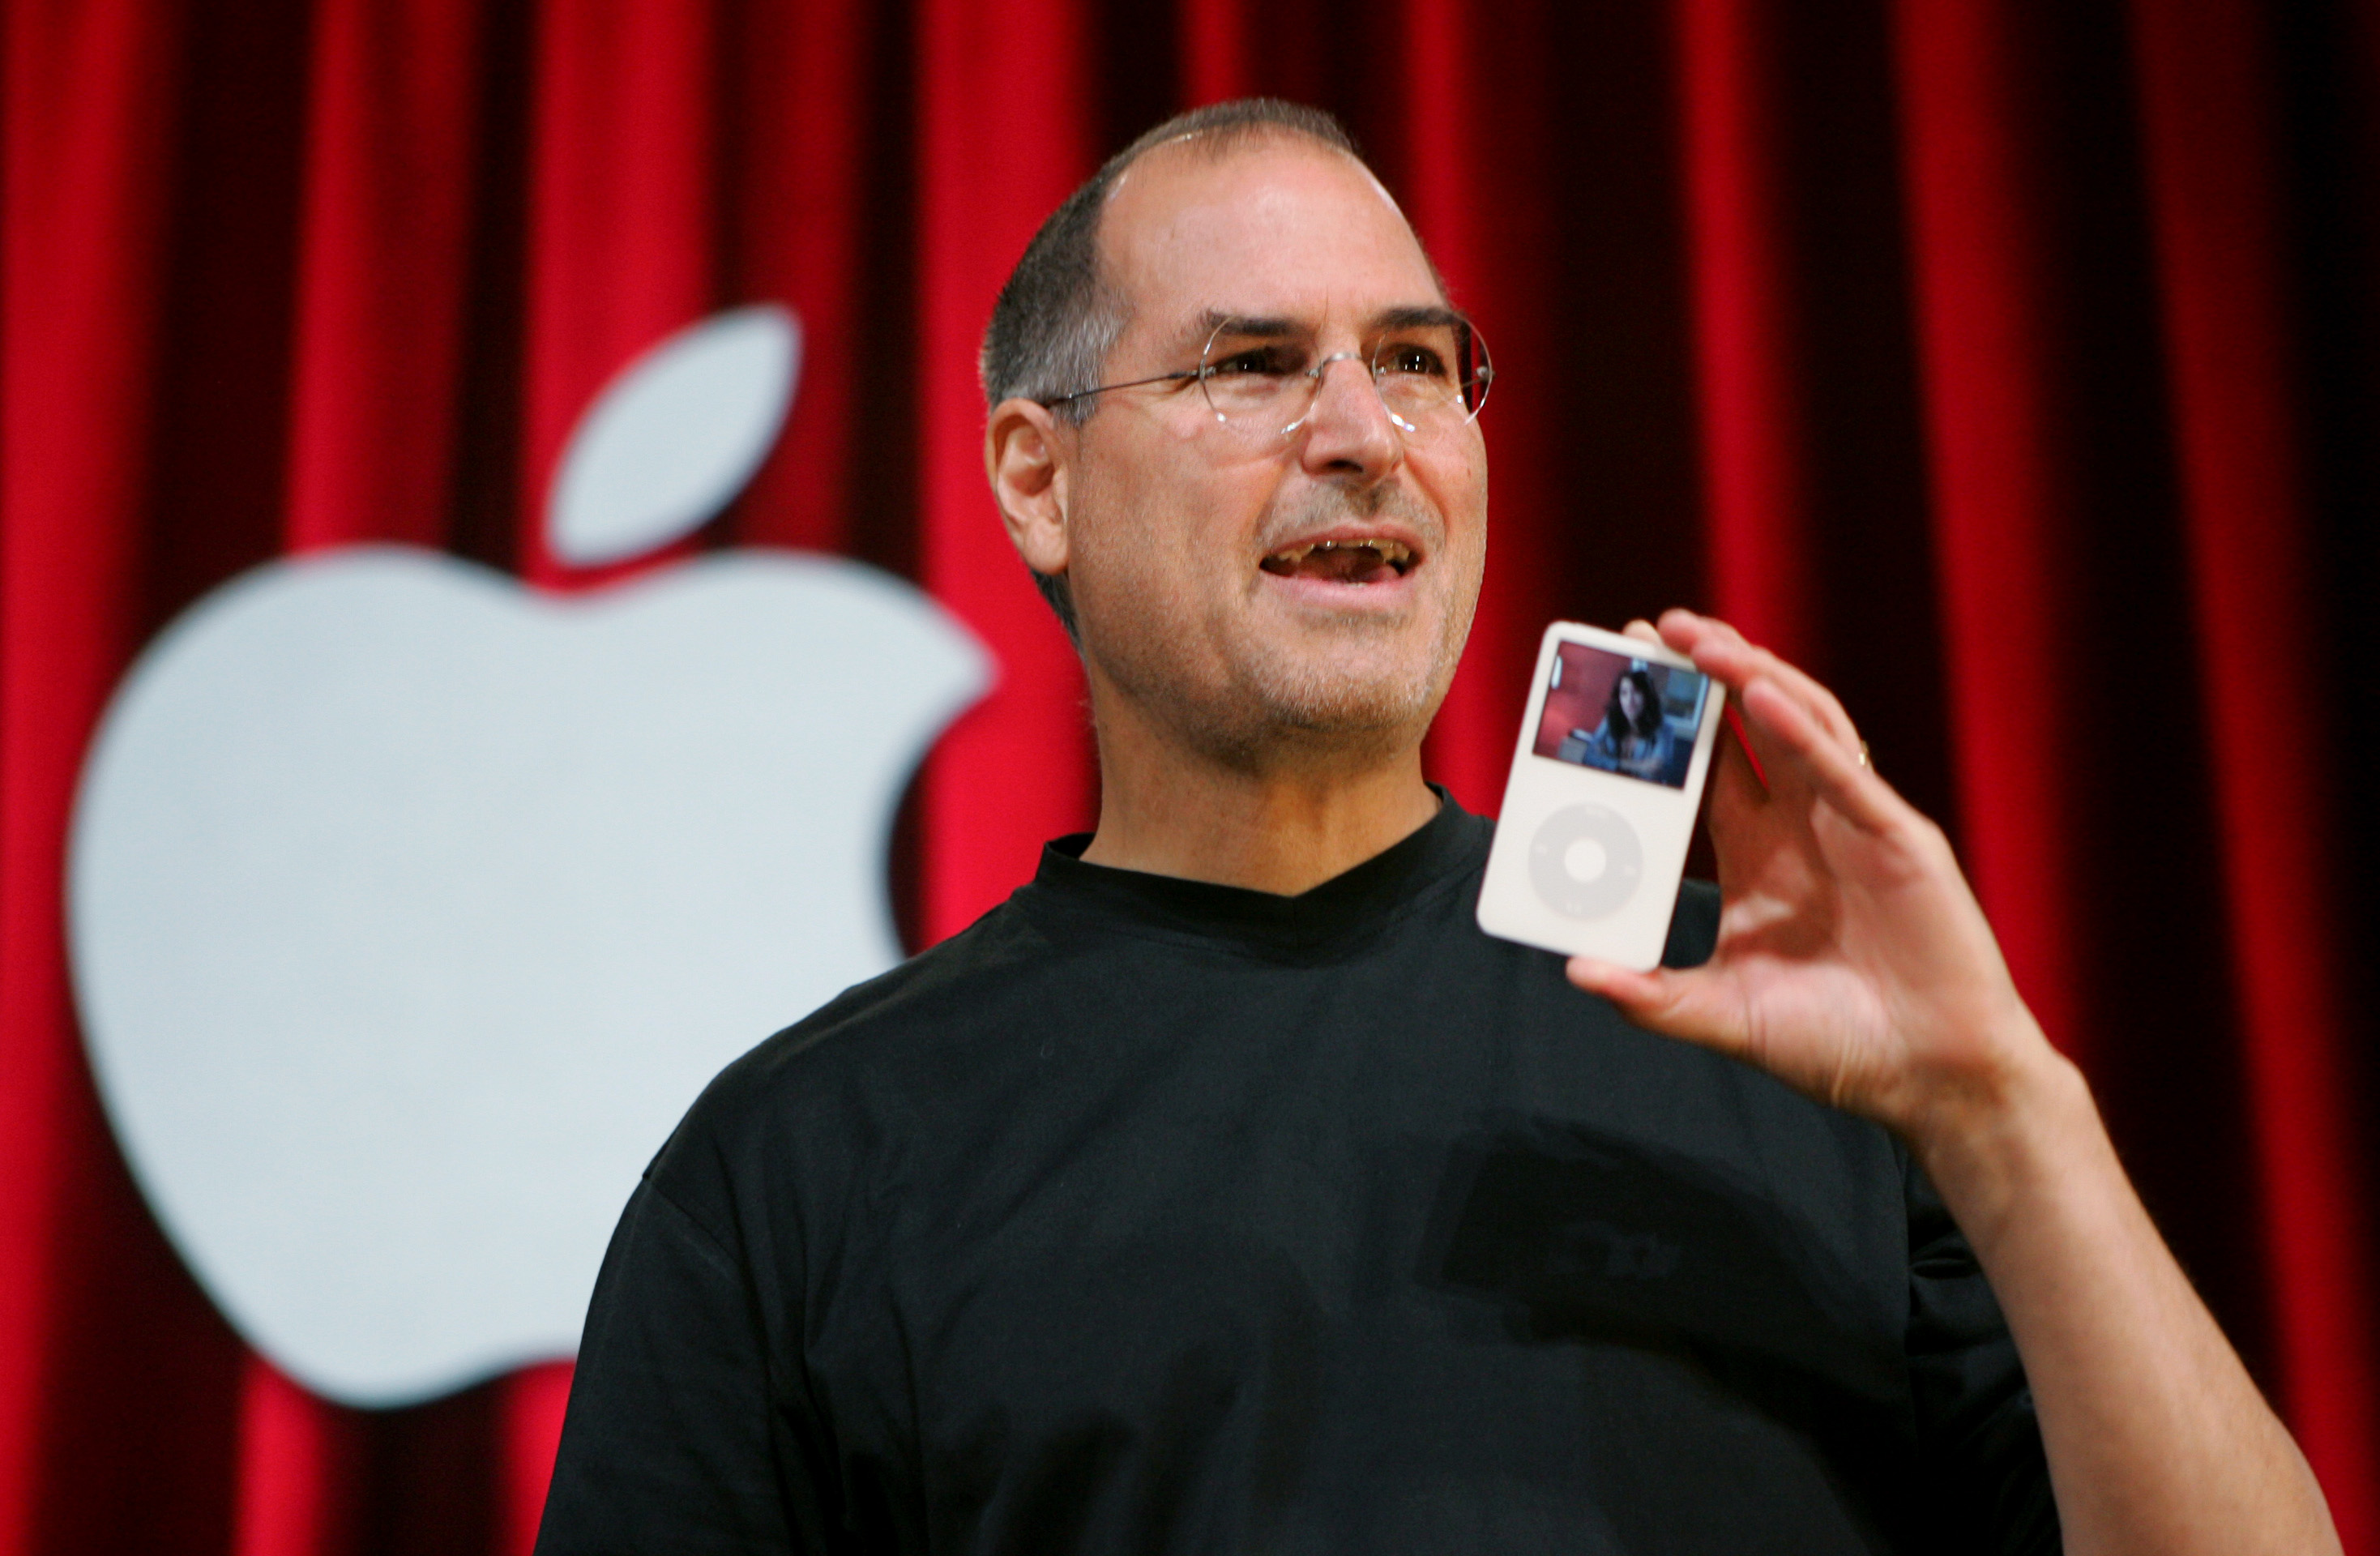 In emails, Jobs determined to keep iPod Apple-only